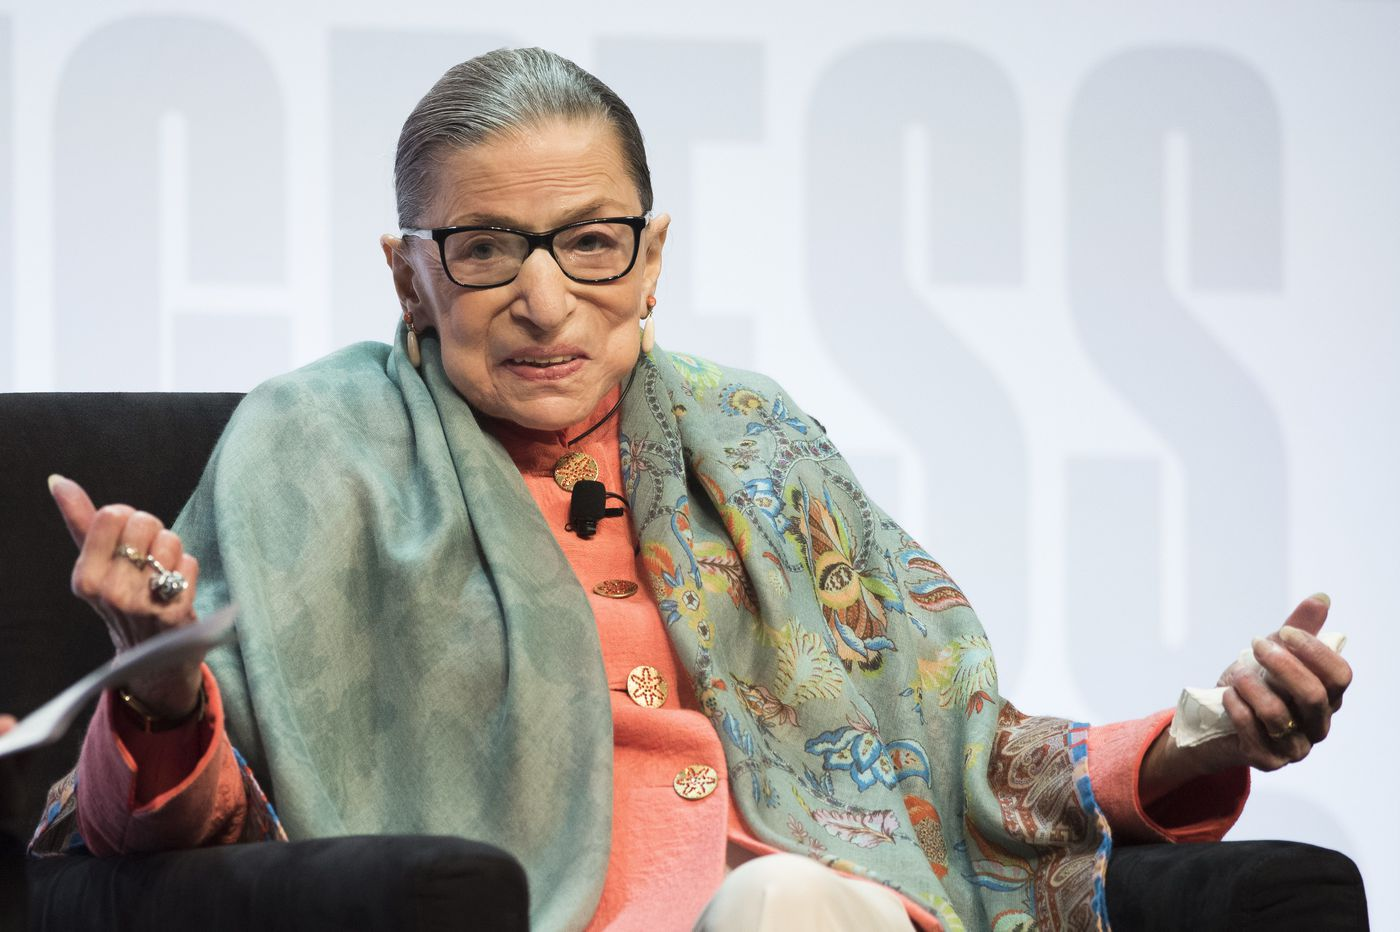 As Supreme Court considers abortion, light more candles for Ruth Bader Ginsberg's health | Editorial